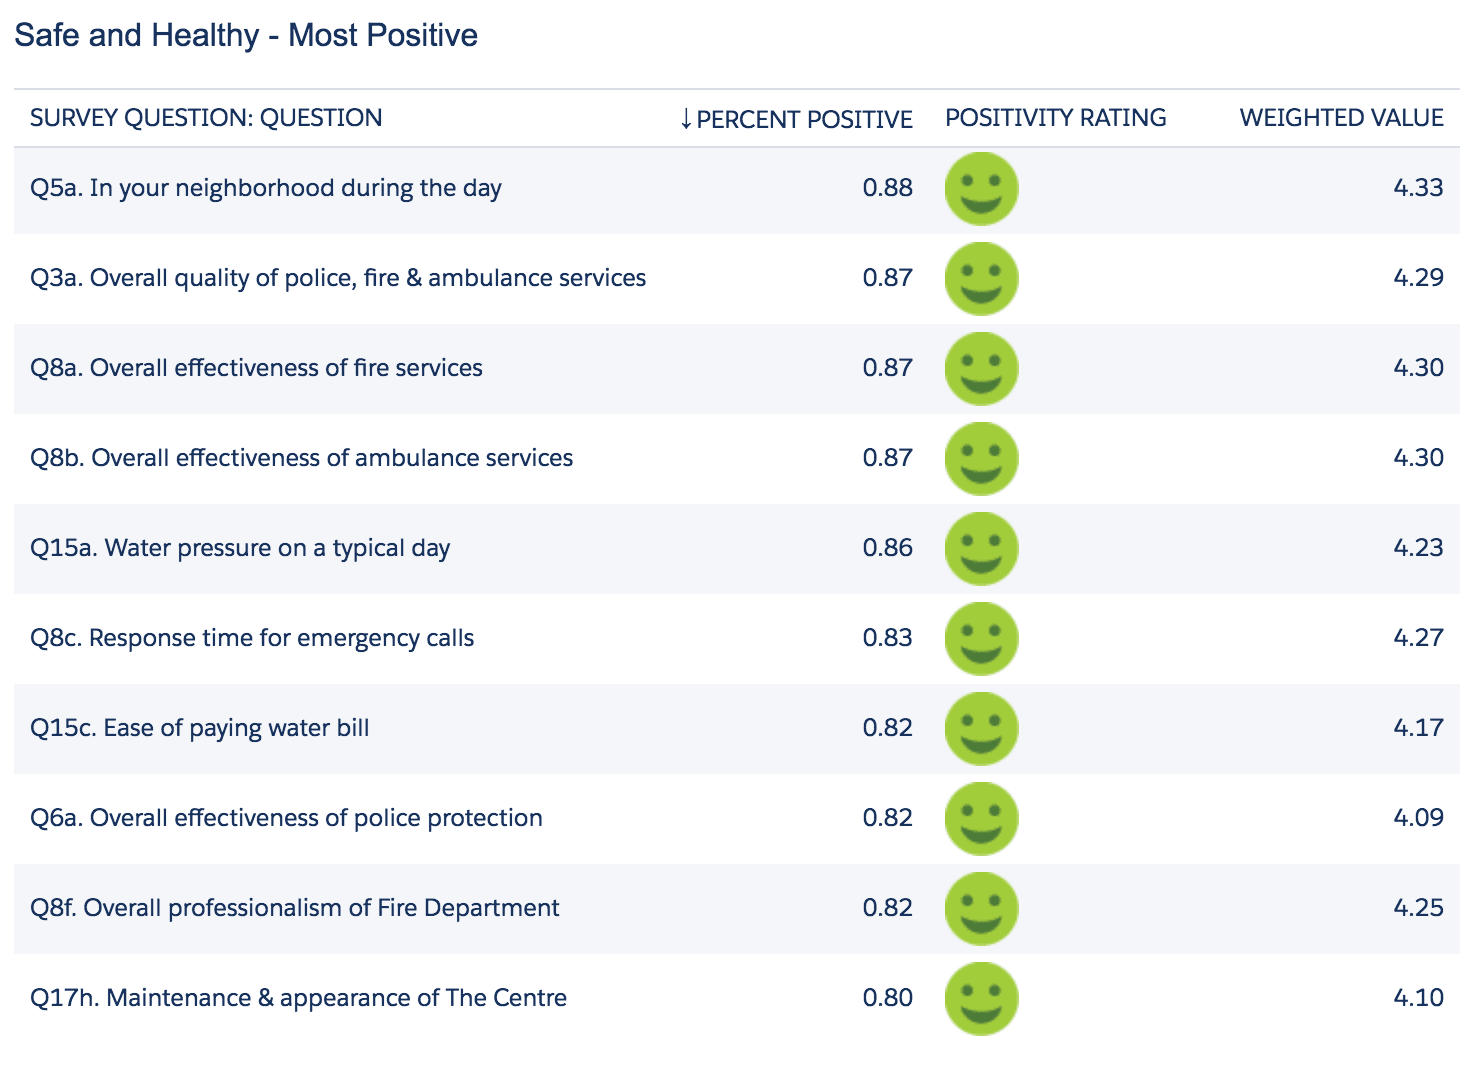 Safe and Healthy Top Ten Positive